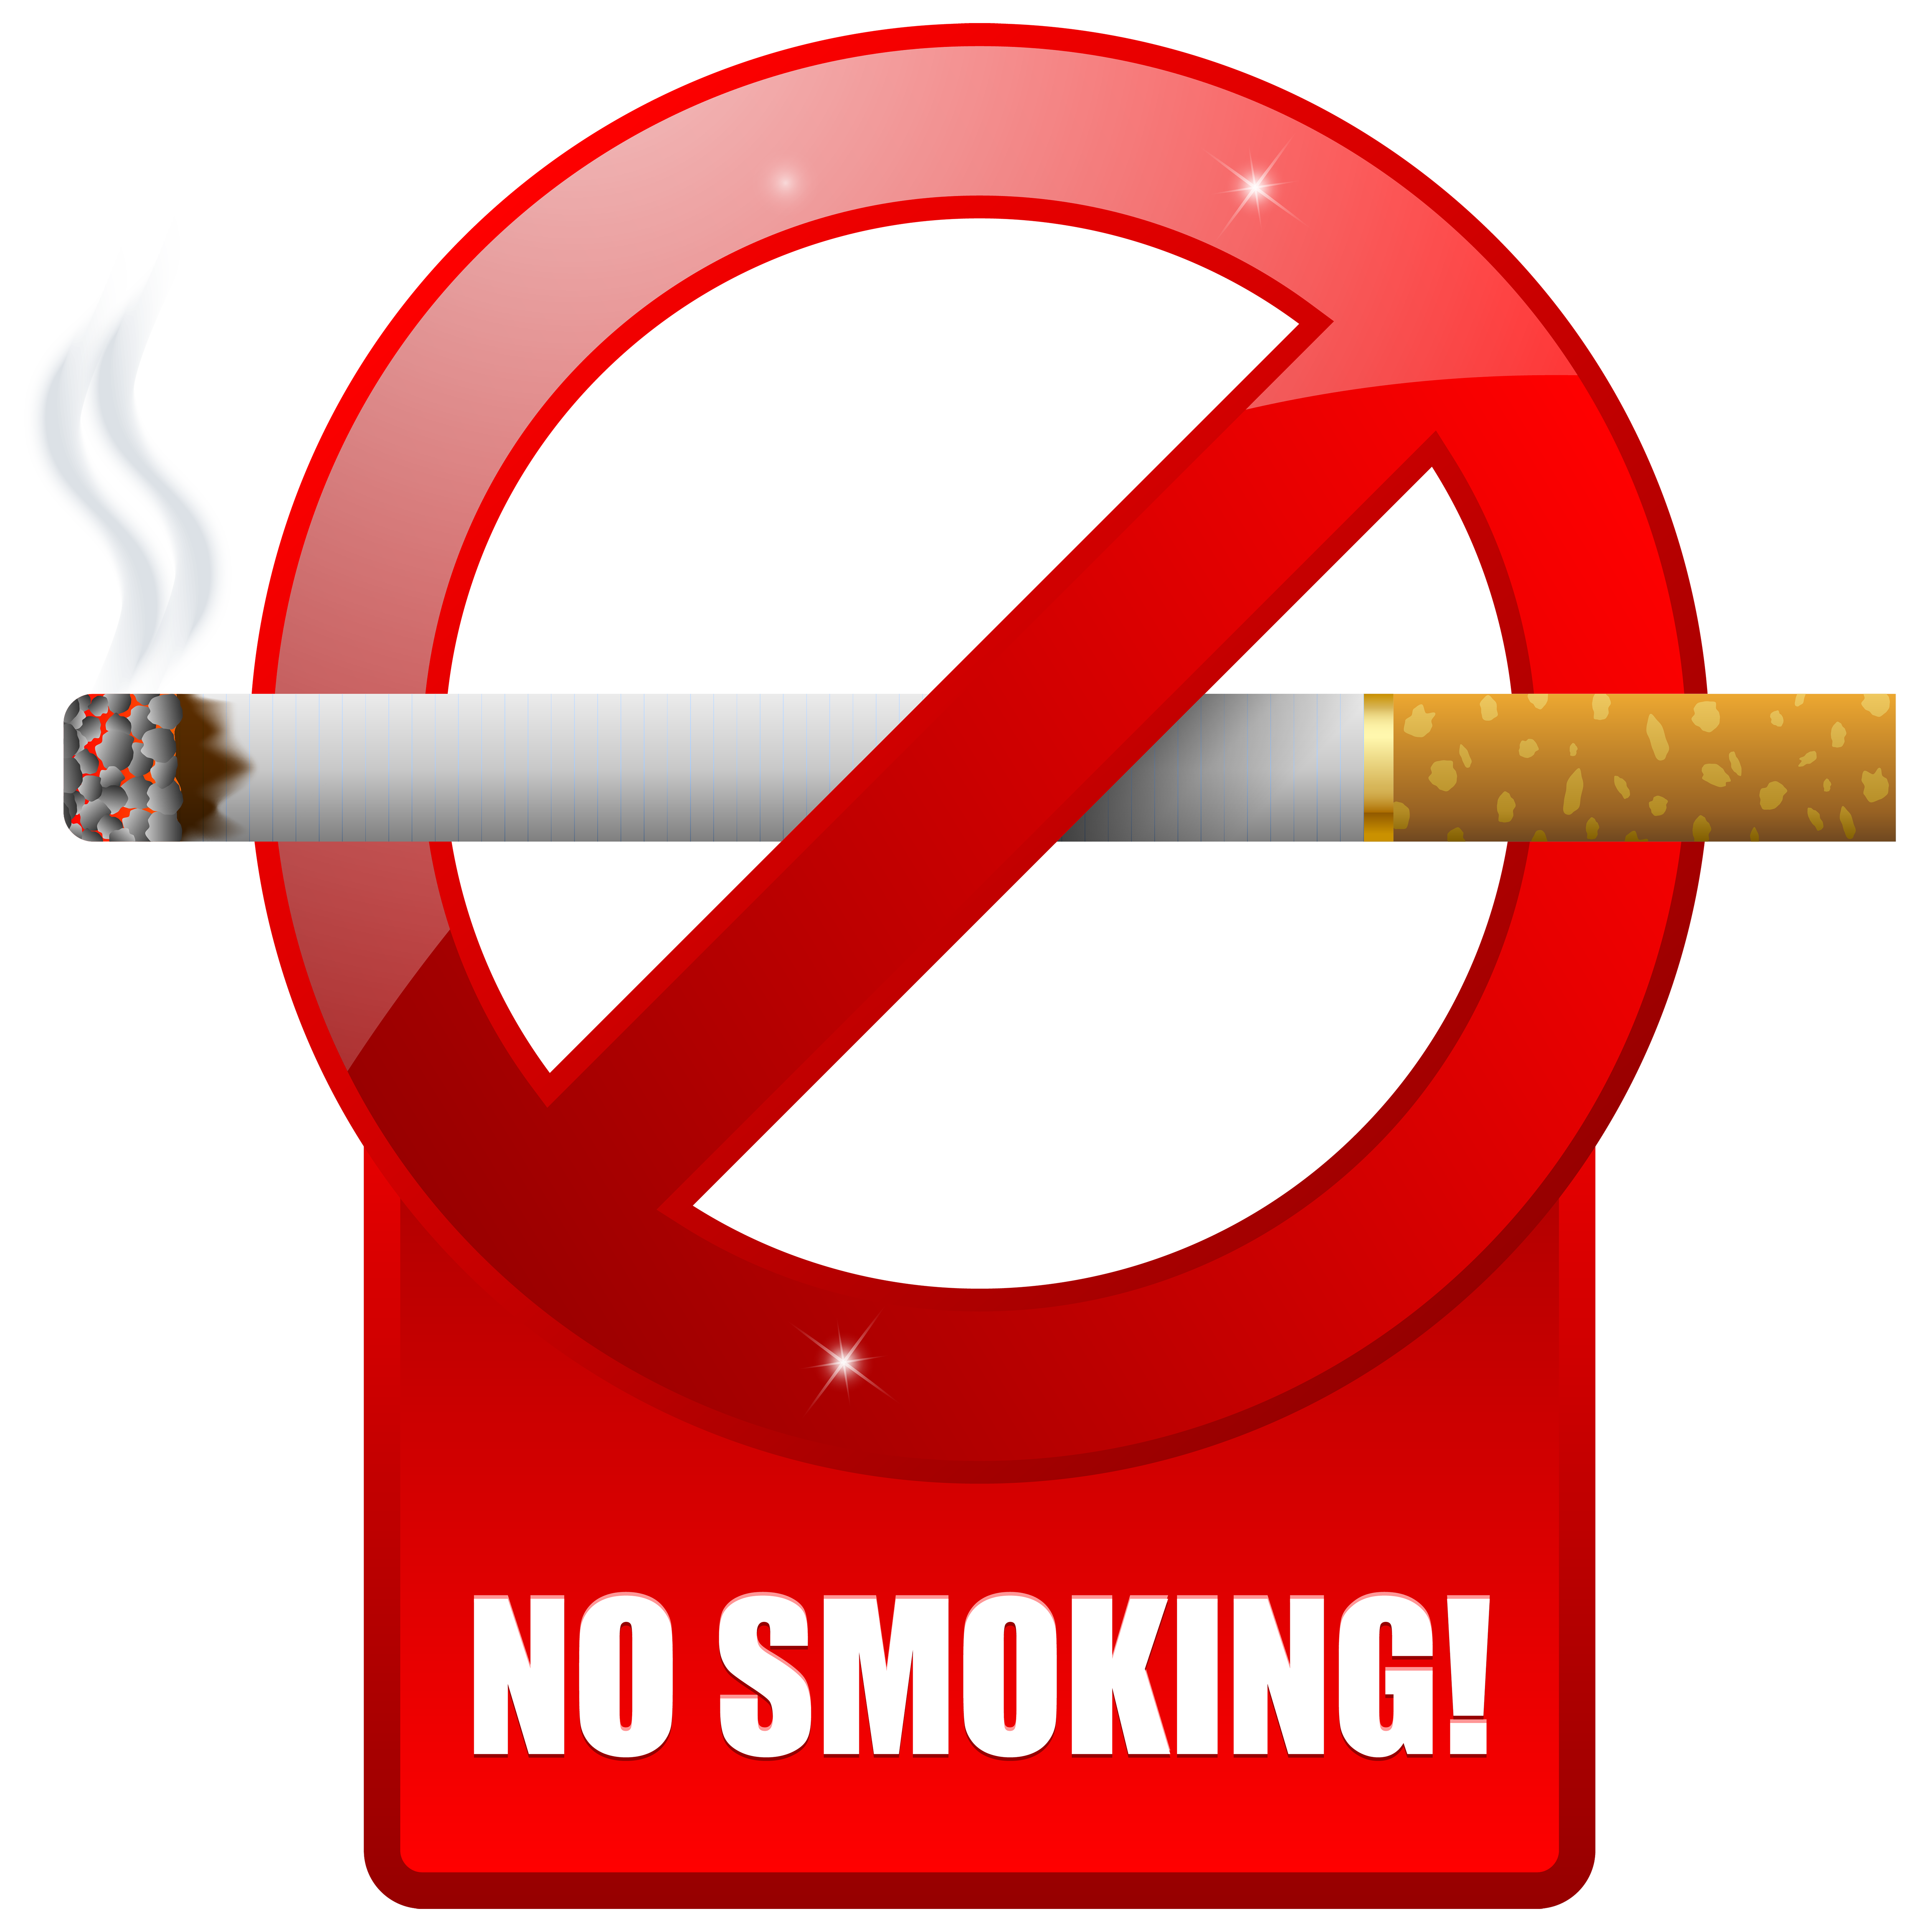 No Smoking Warning Sign Png